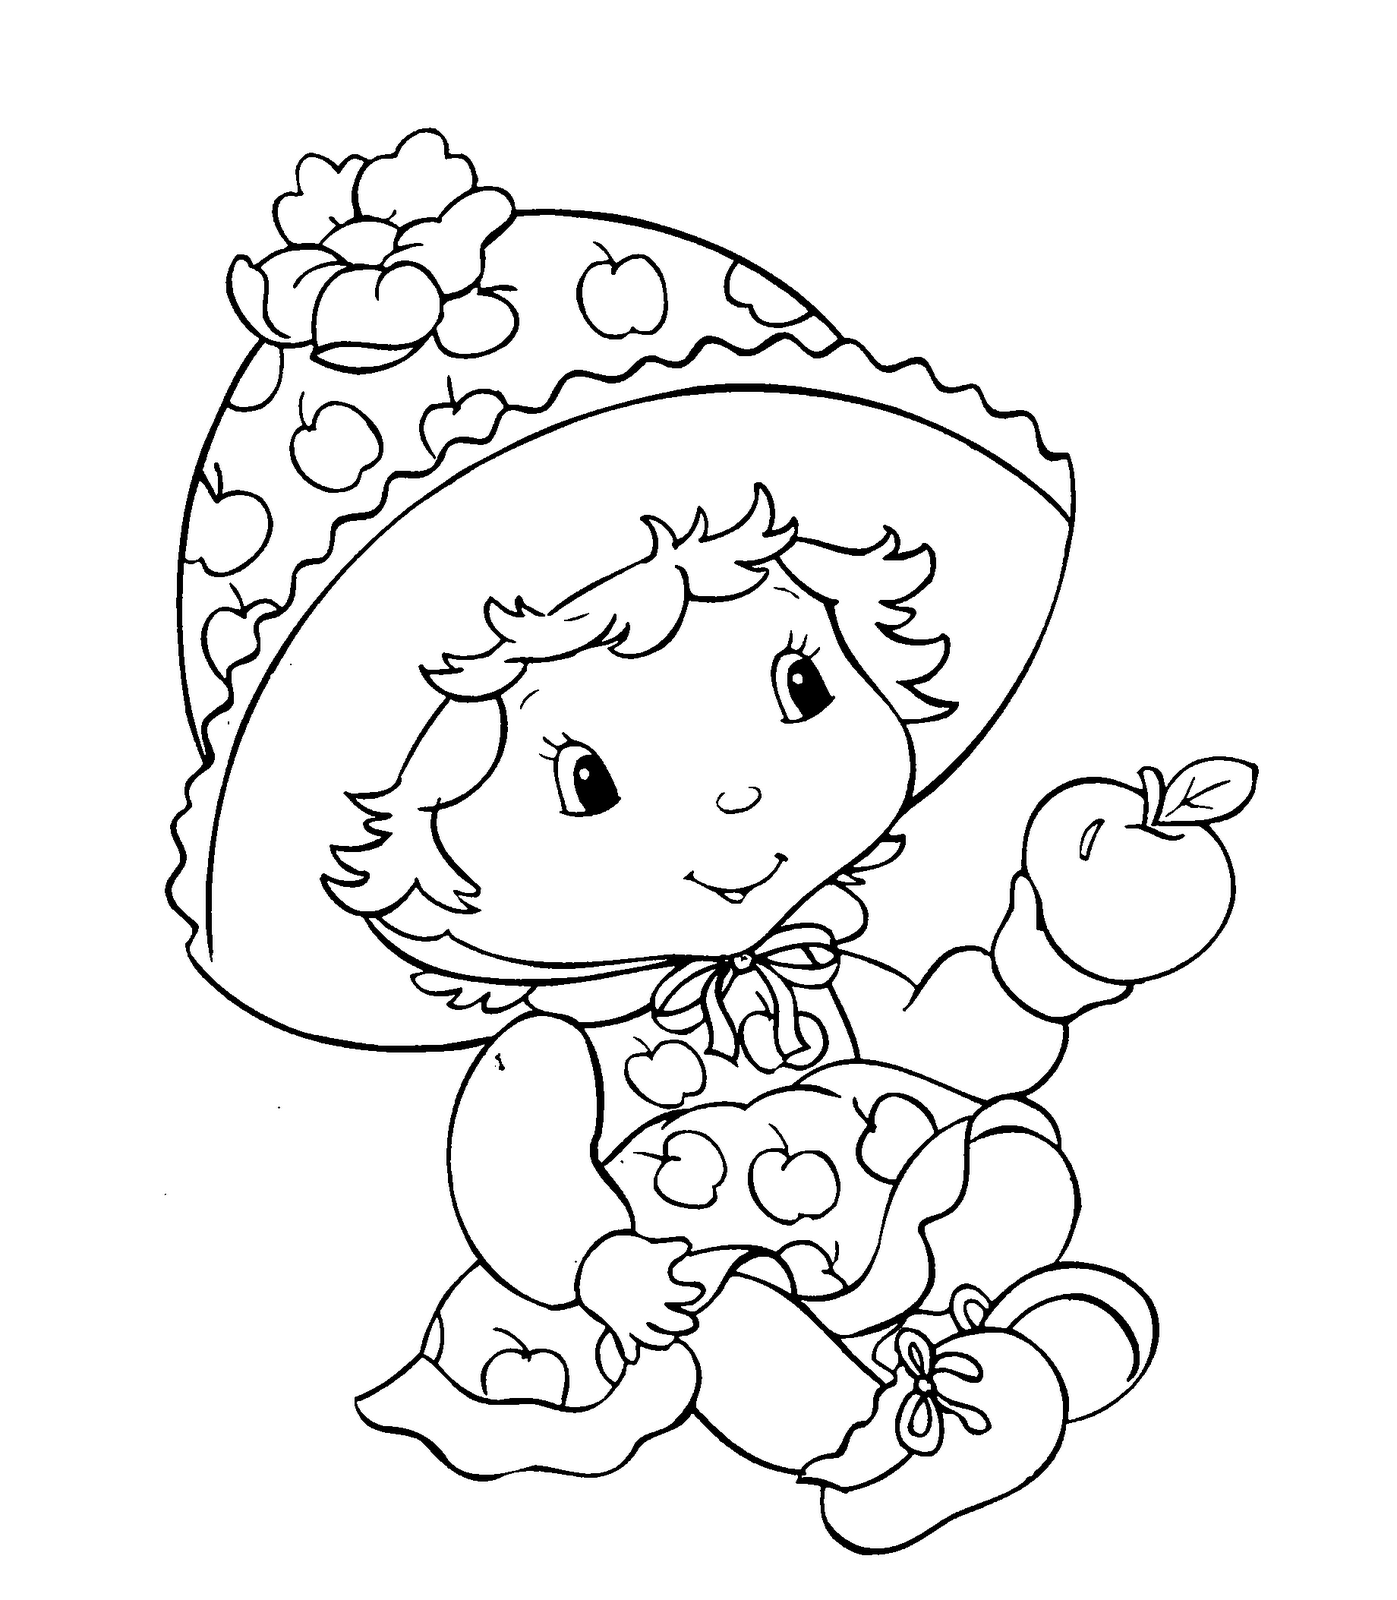 coloring pages of strawberry shortcake strawberry shortcake coloring pages free printable shortcake strawberry of coloring pages